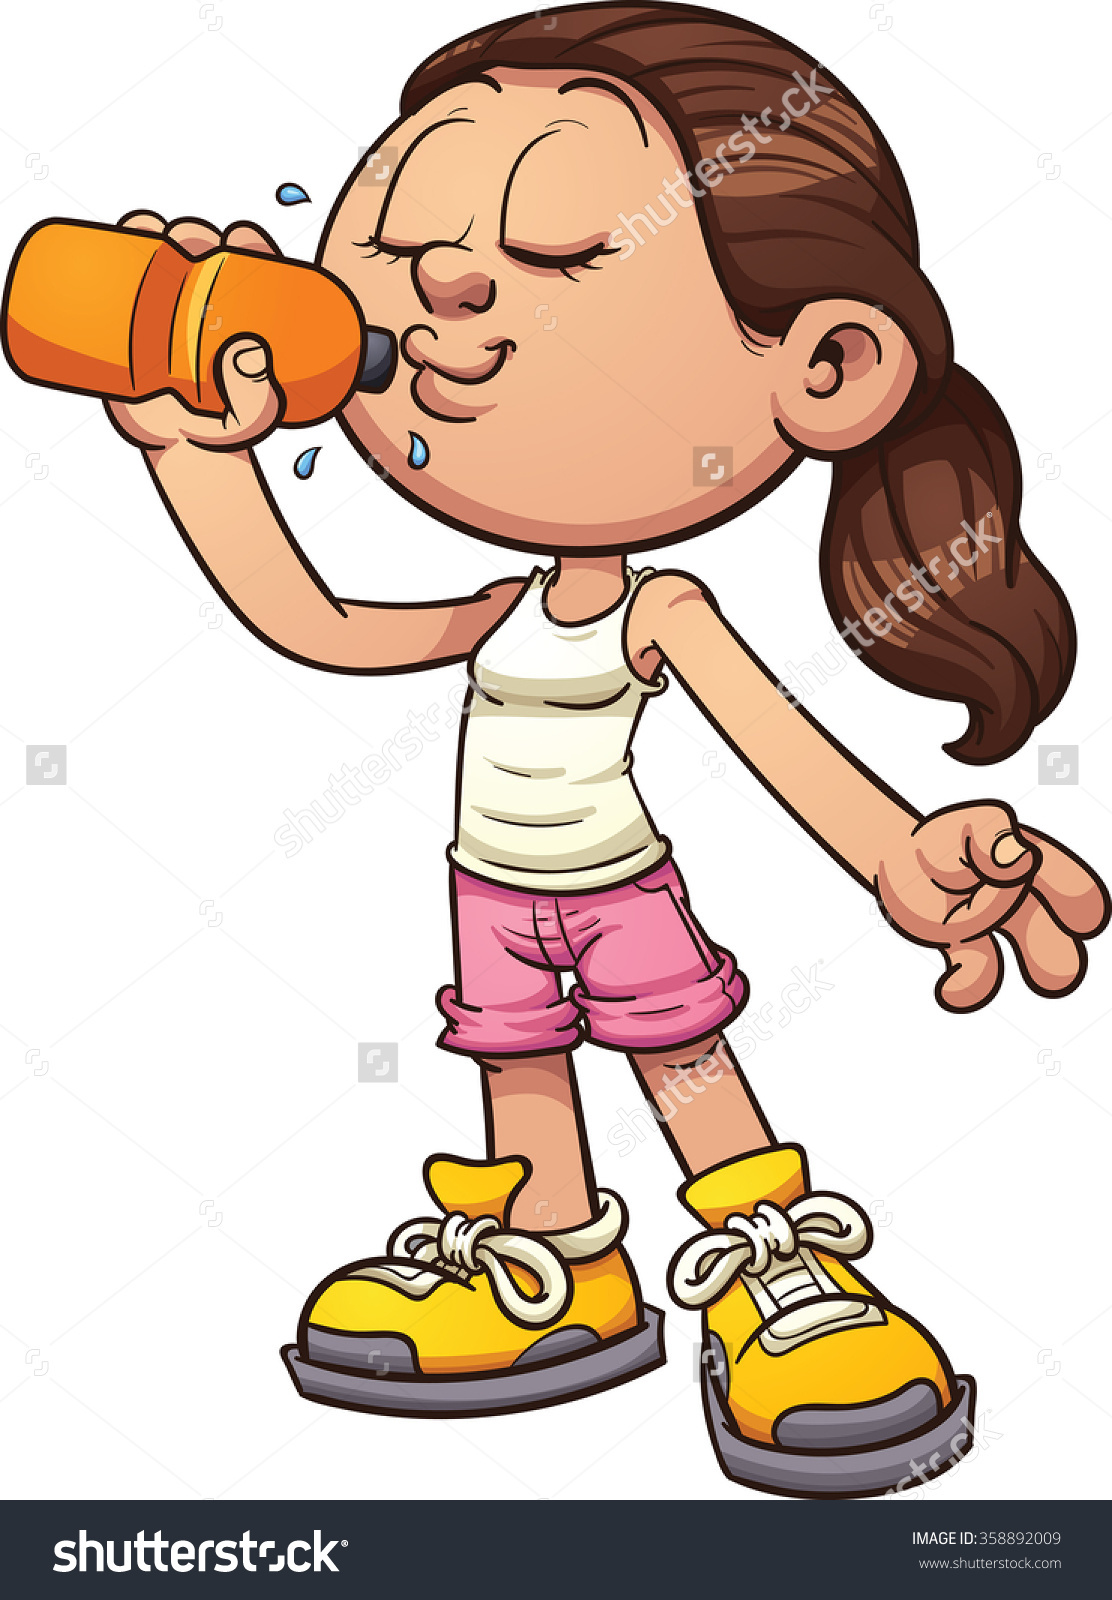 Water and alcohol clipart.